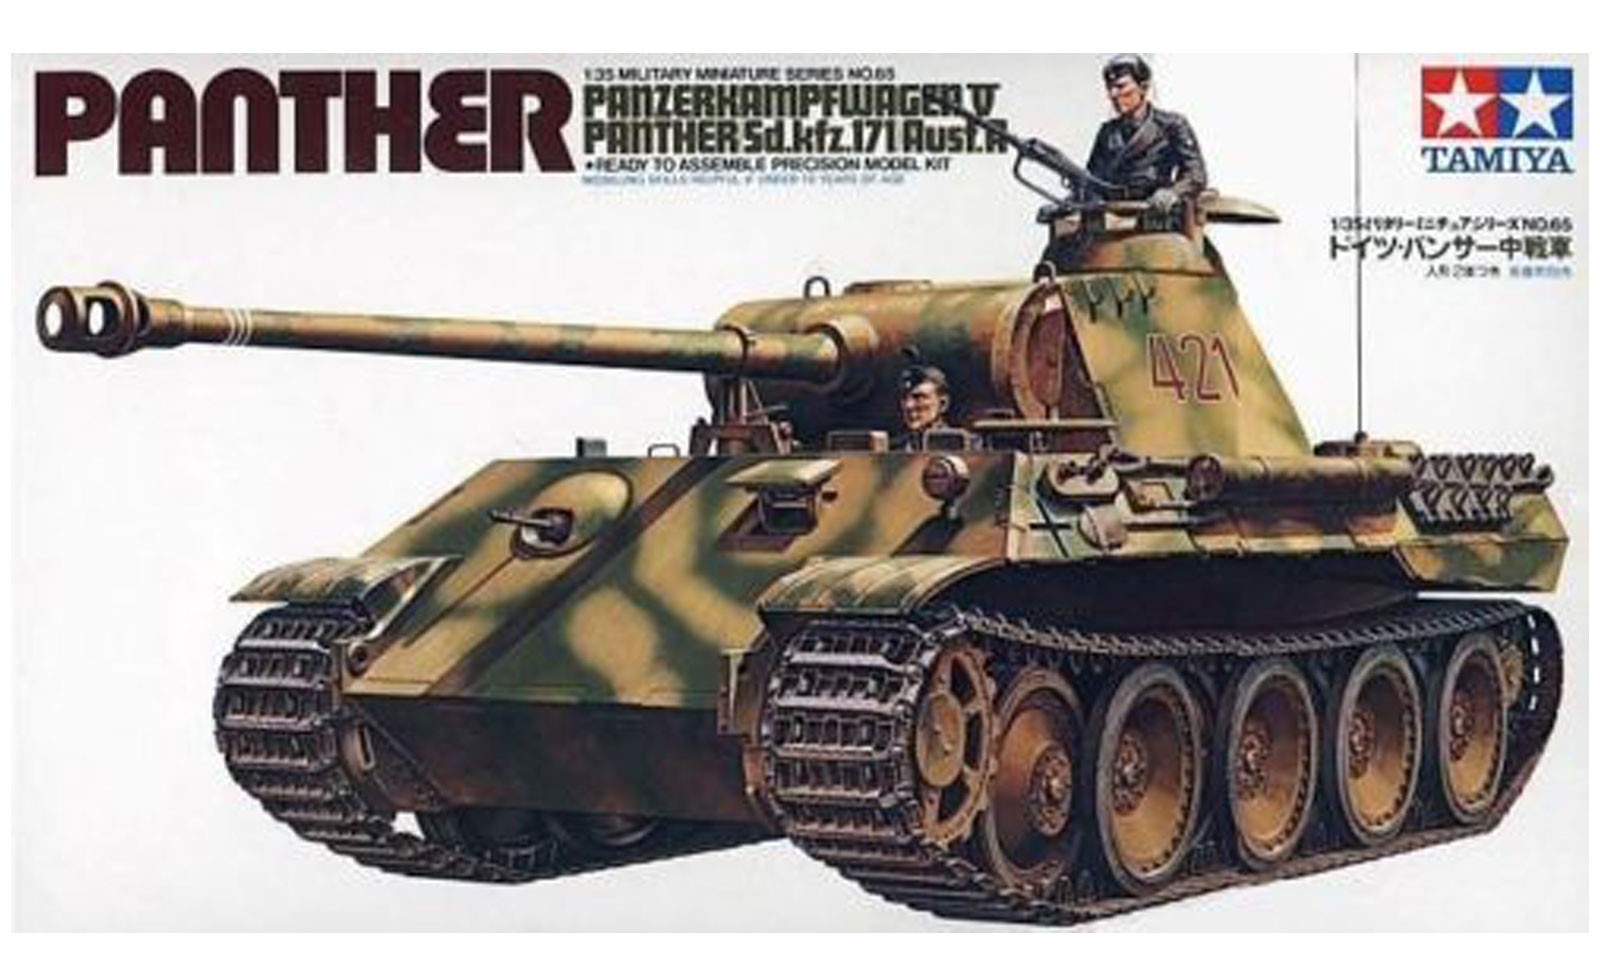 German Panther Medium Tank Kit - Tamiya 35065 - plastic model kit - 1/35 scale